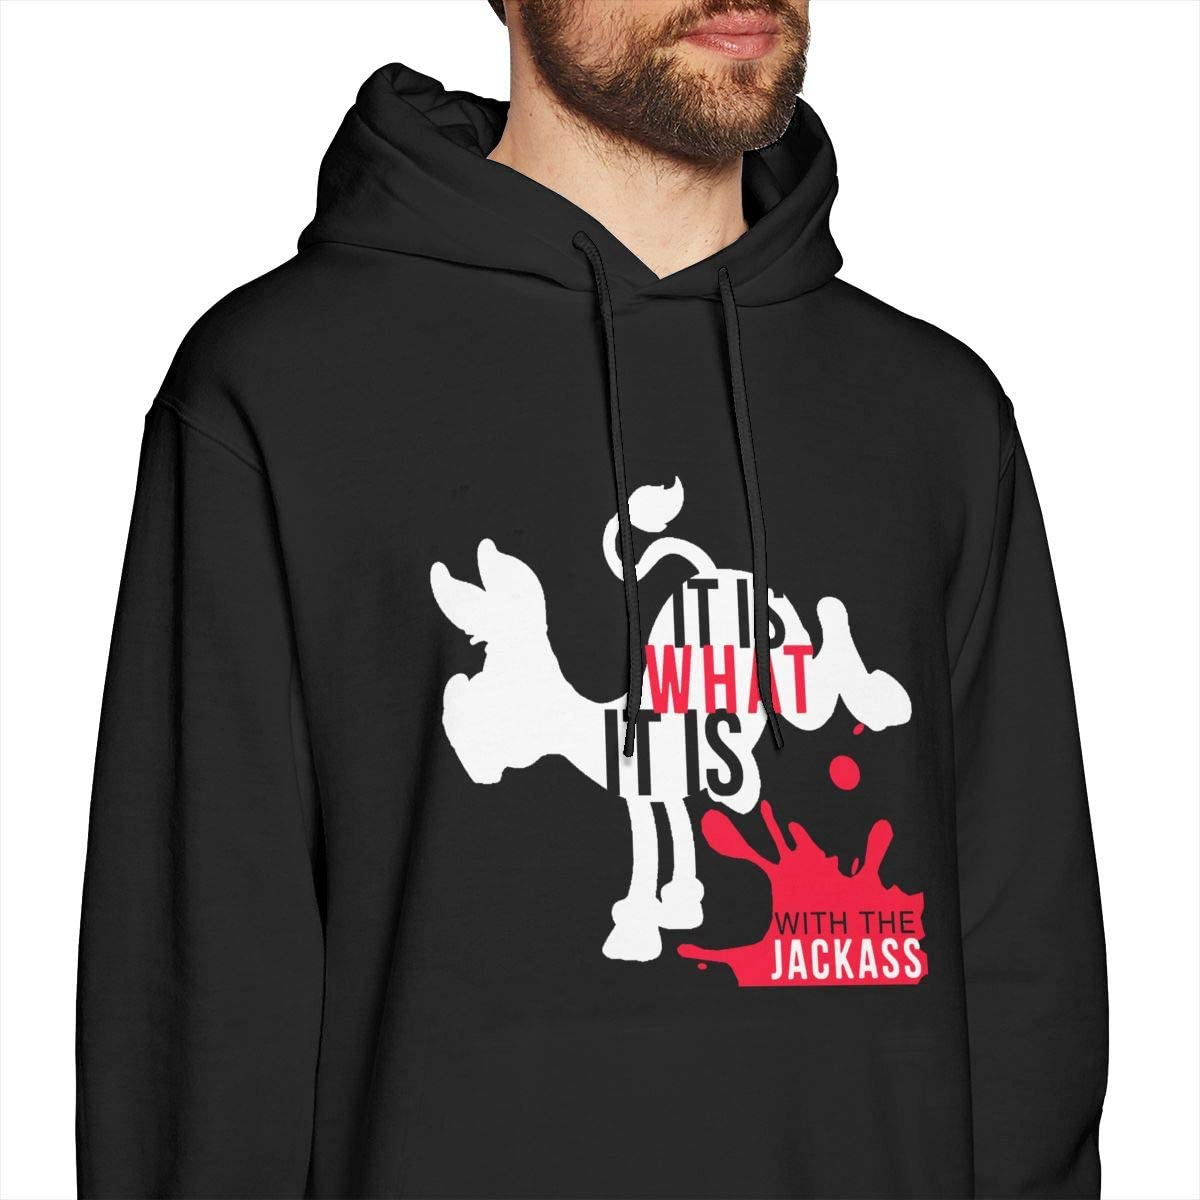 JamieBrown Men It is What It is with The Jackass Sweaters Black with Mens Sweatshirts